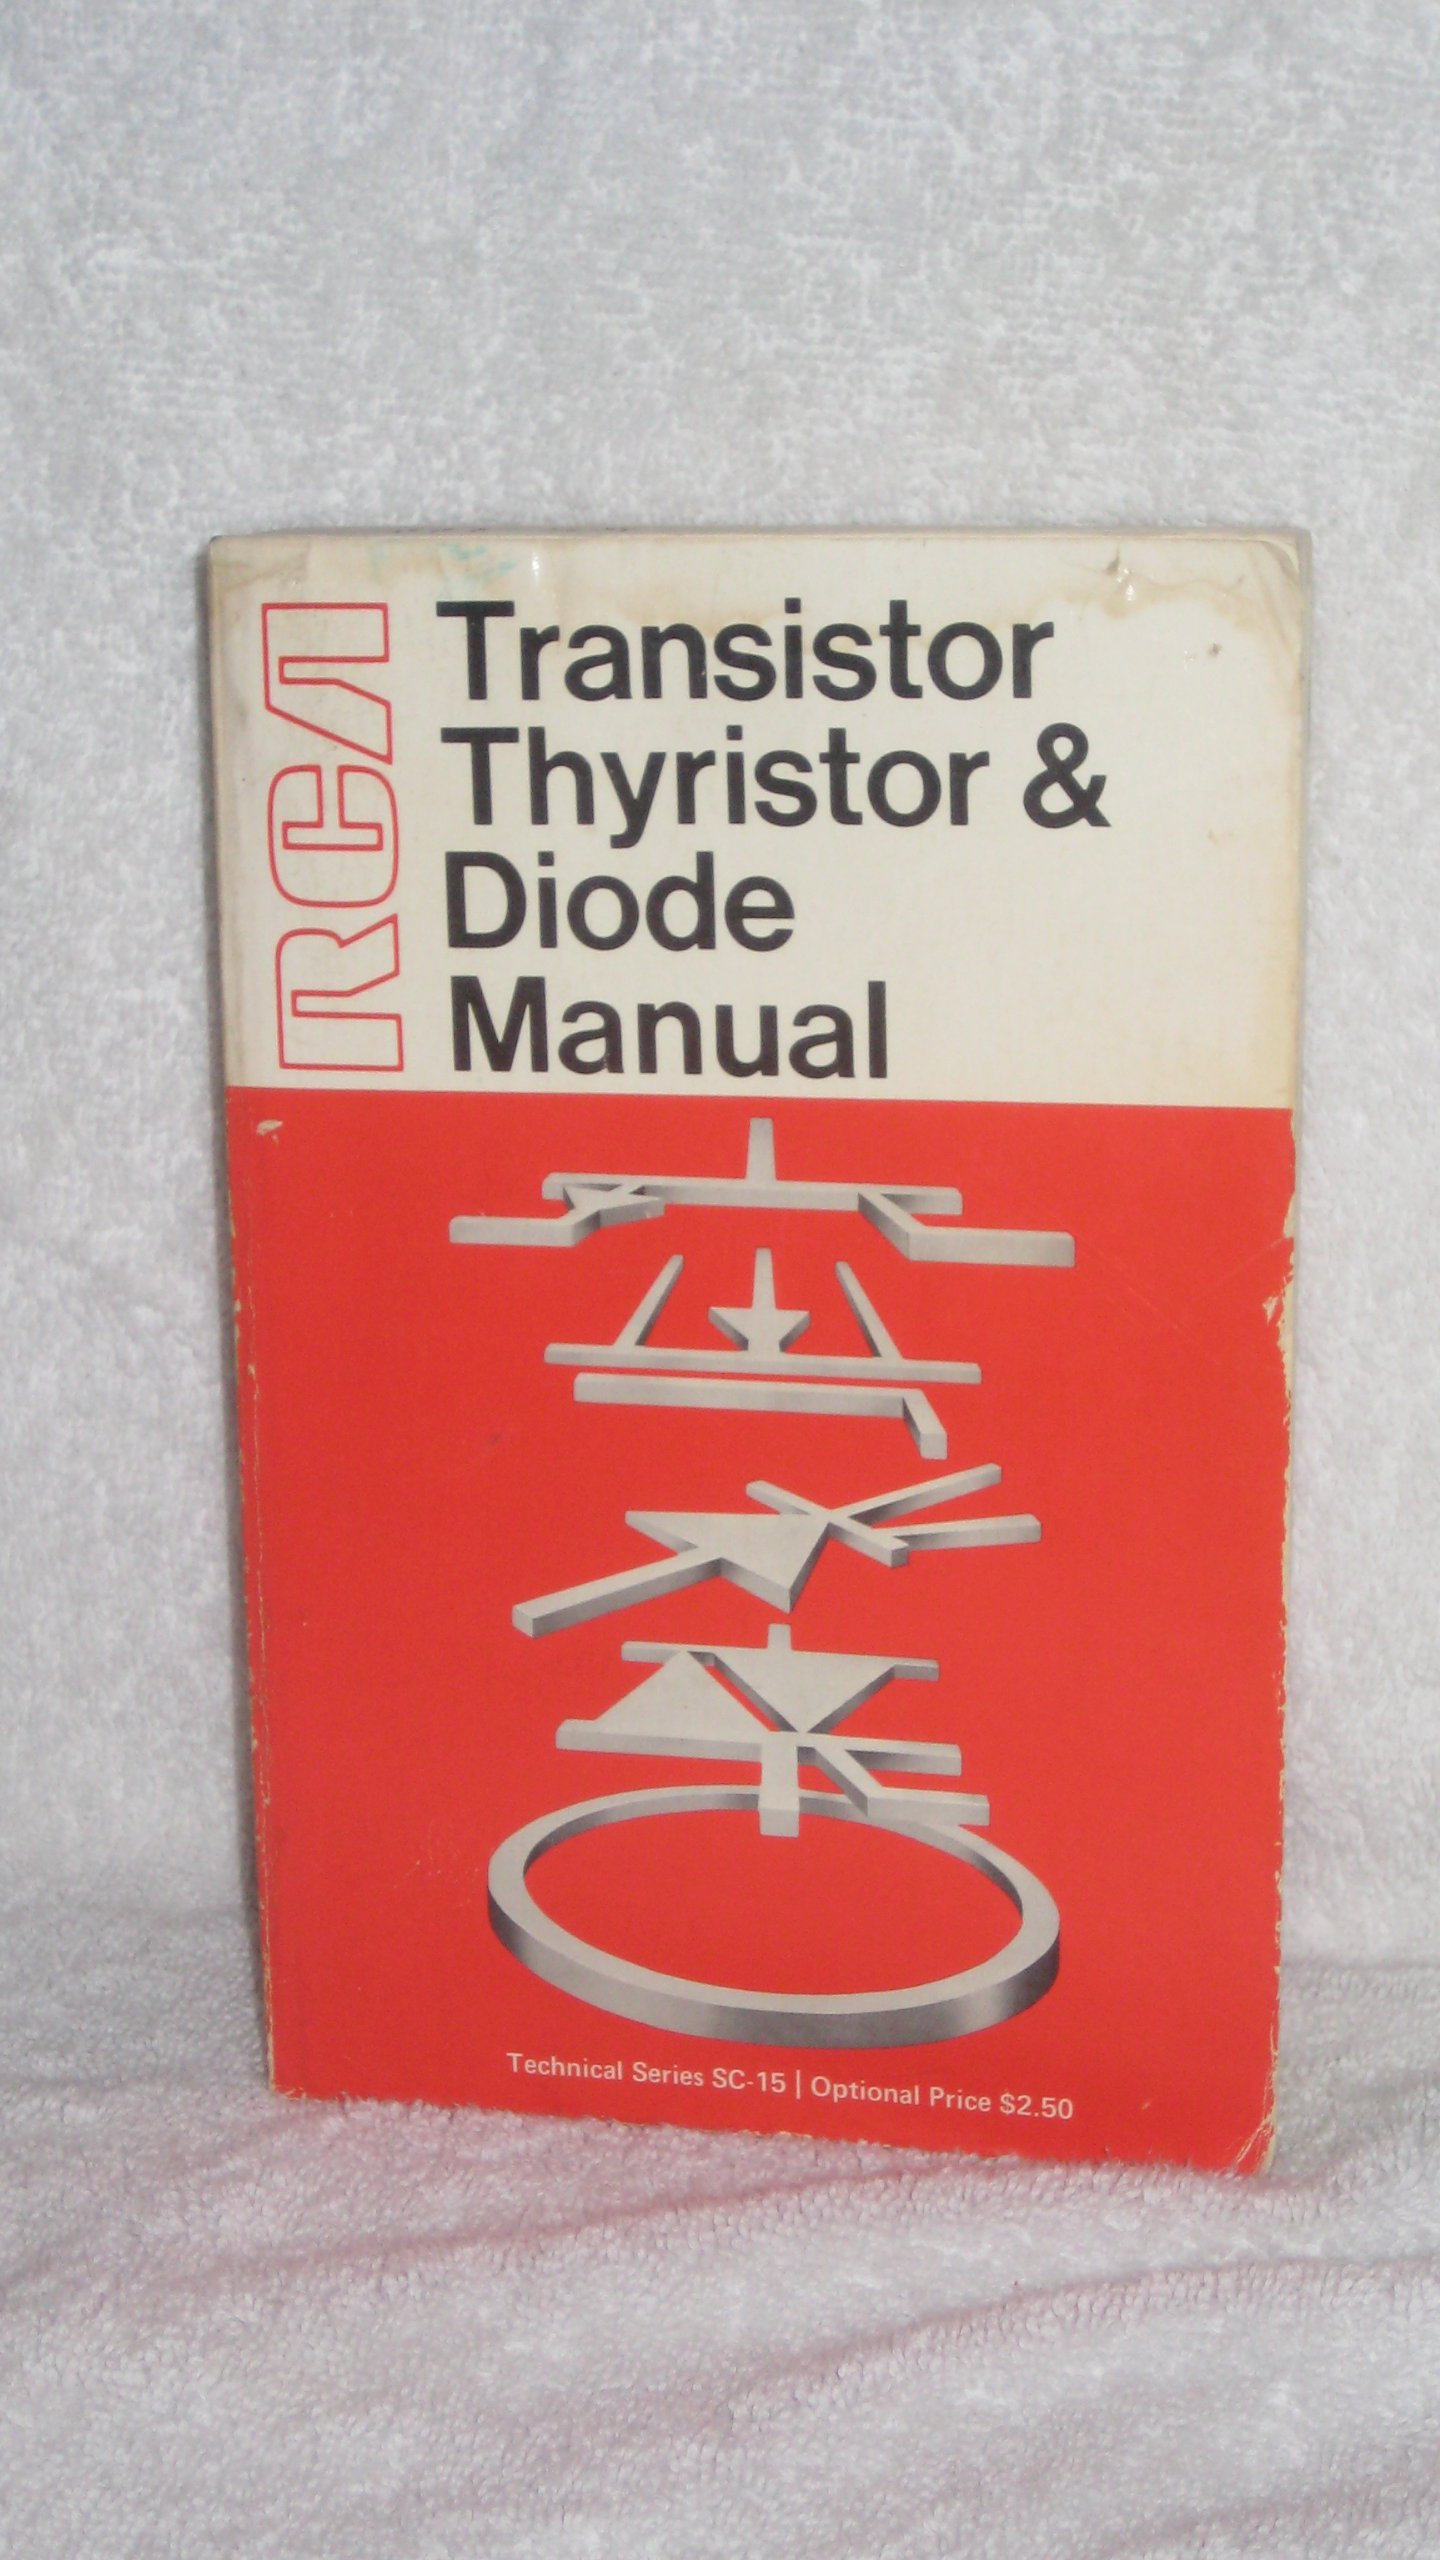 rca transistor thyristor diode manual solid state division rca rh amazon com Old RCA Manuals Old RCA Manuals